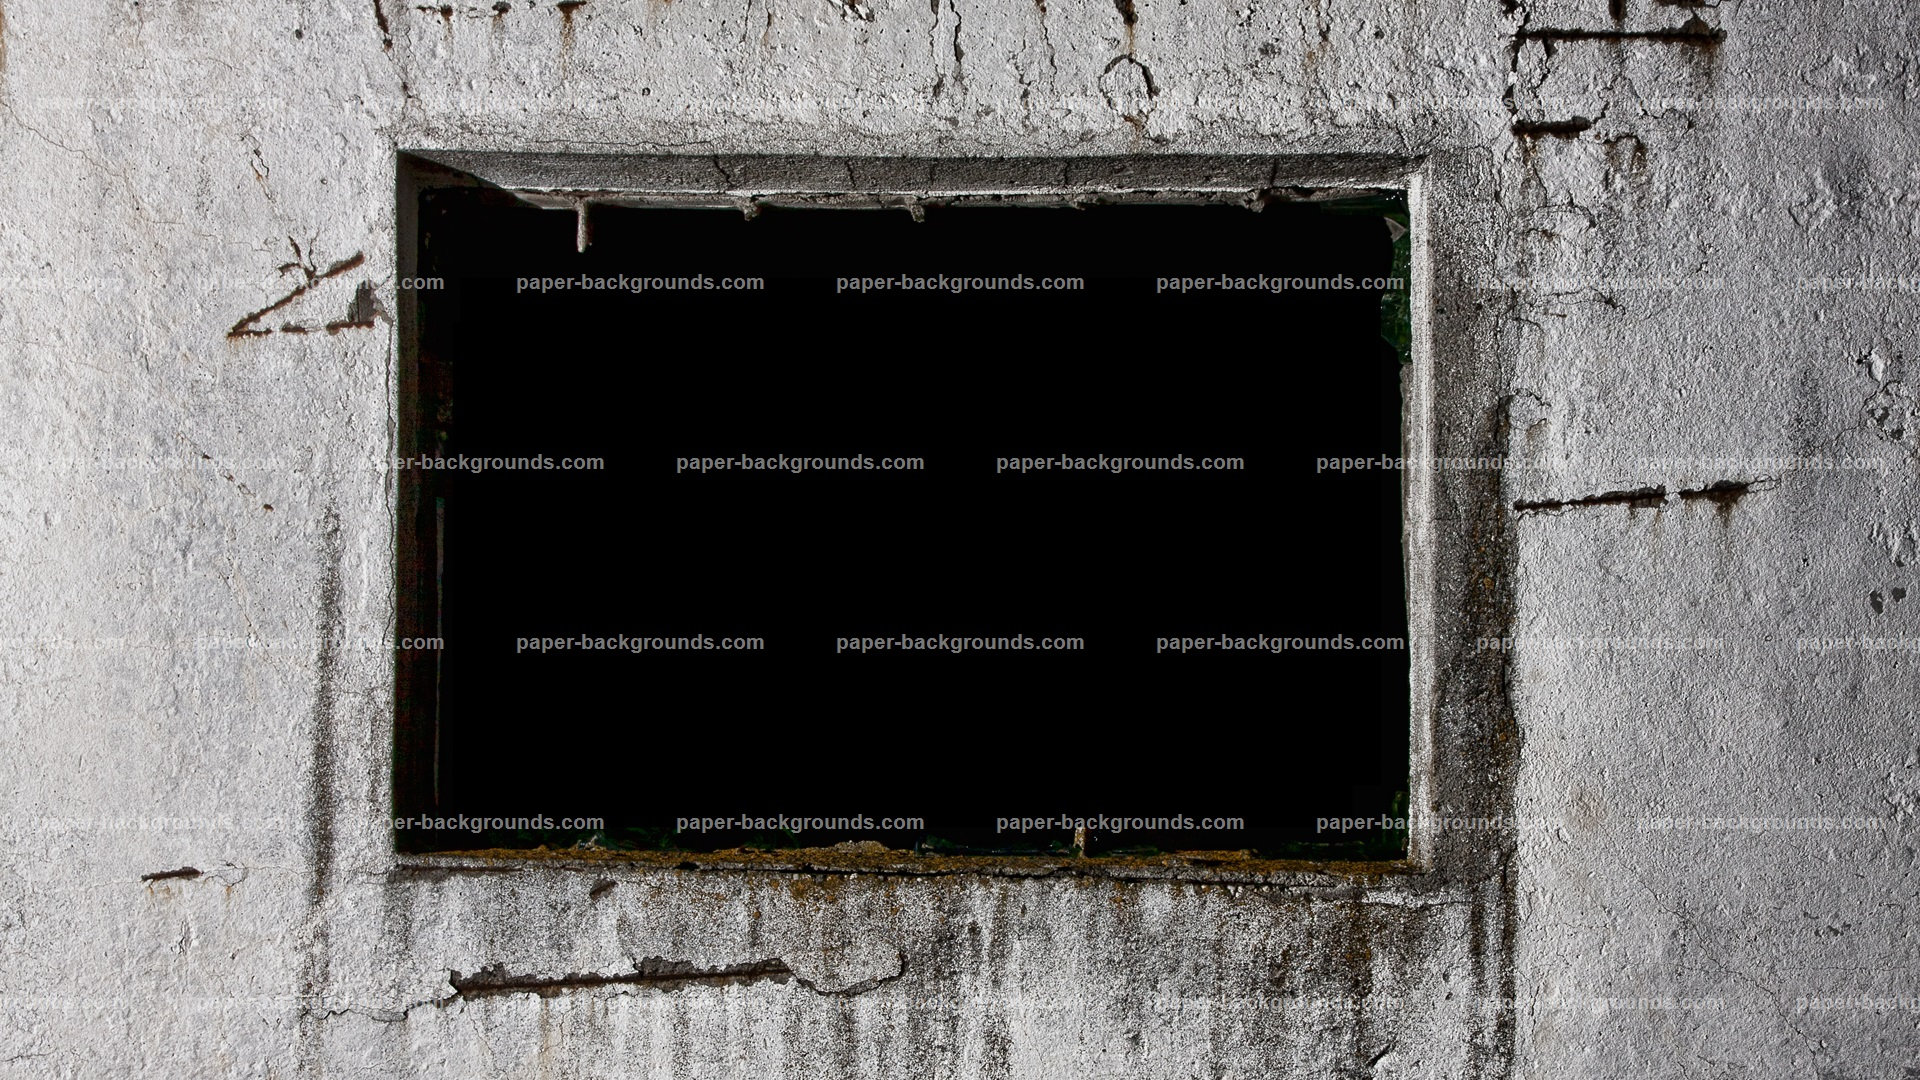 Grunge Concrete Wall Window Frame HD